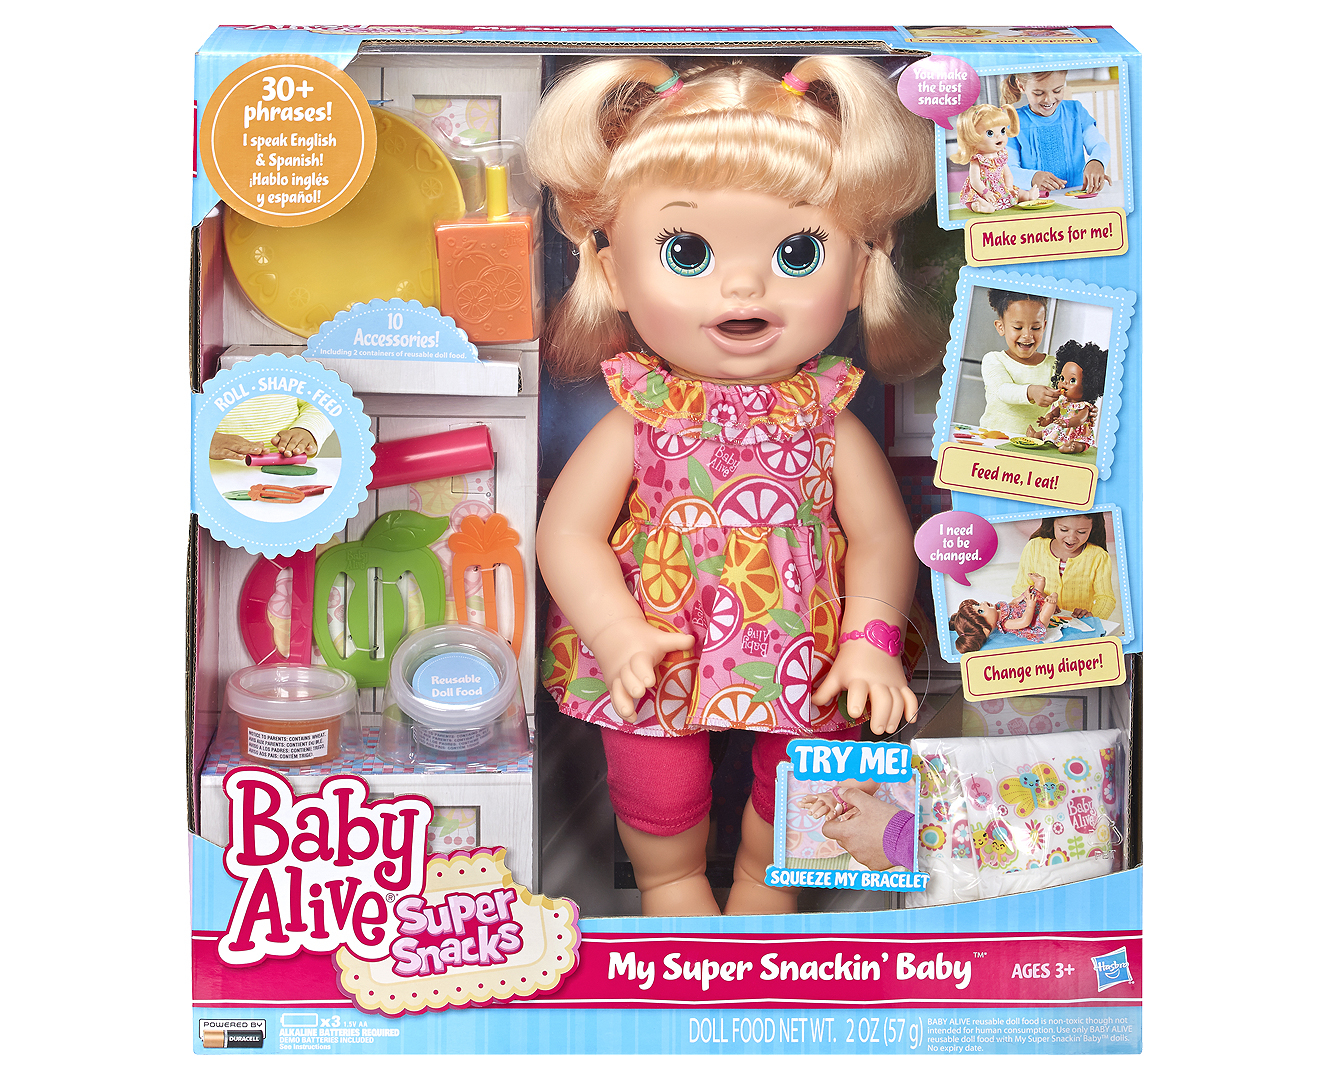 Baby Alive Super Snacks Snackin/' Sara Doll pants. pack diapers,food /& dress